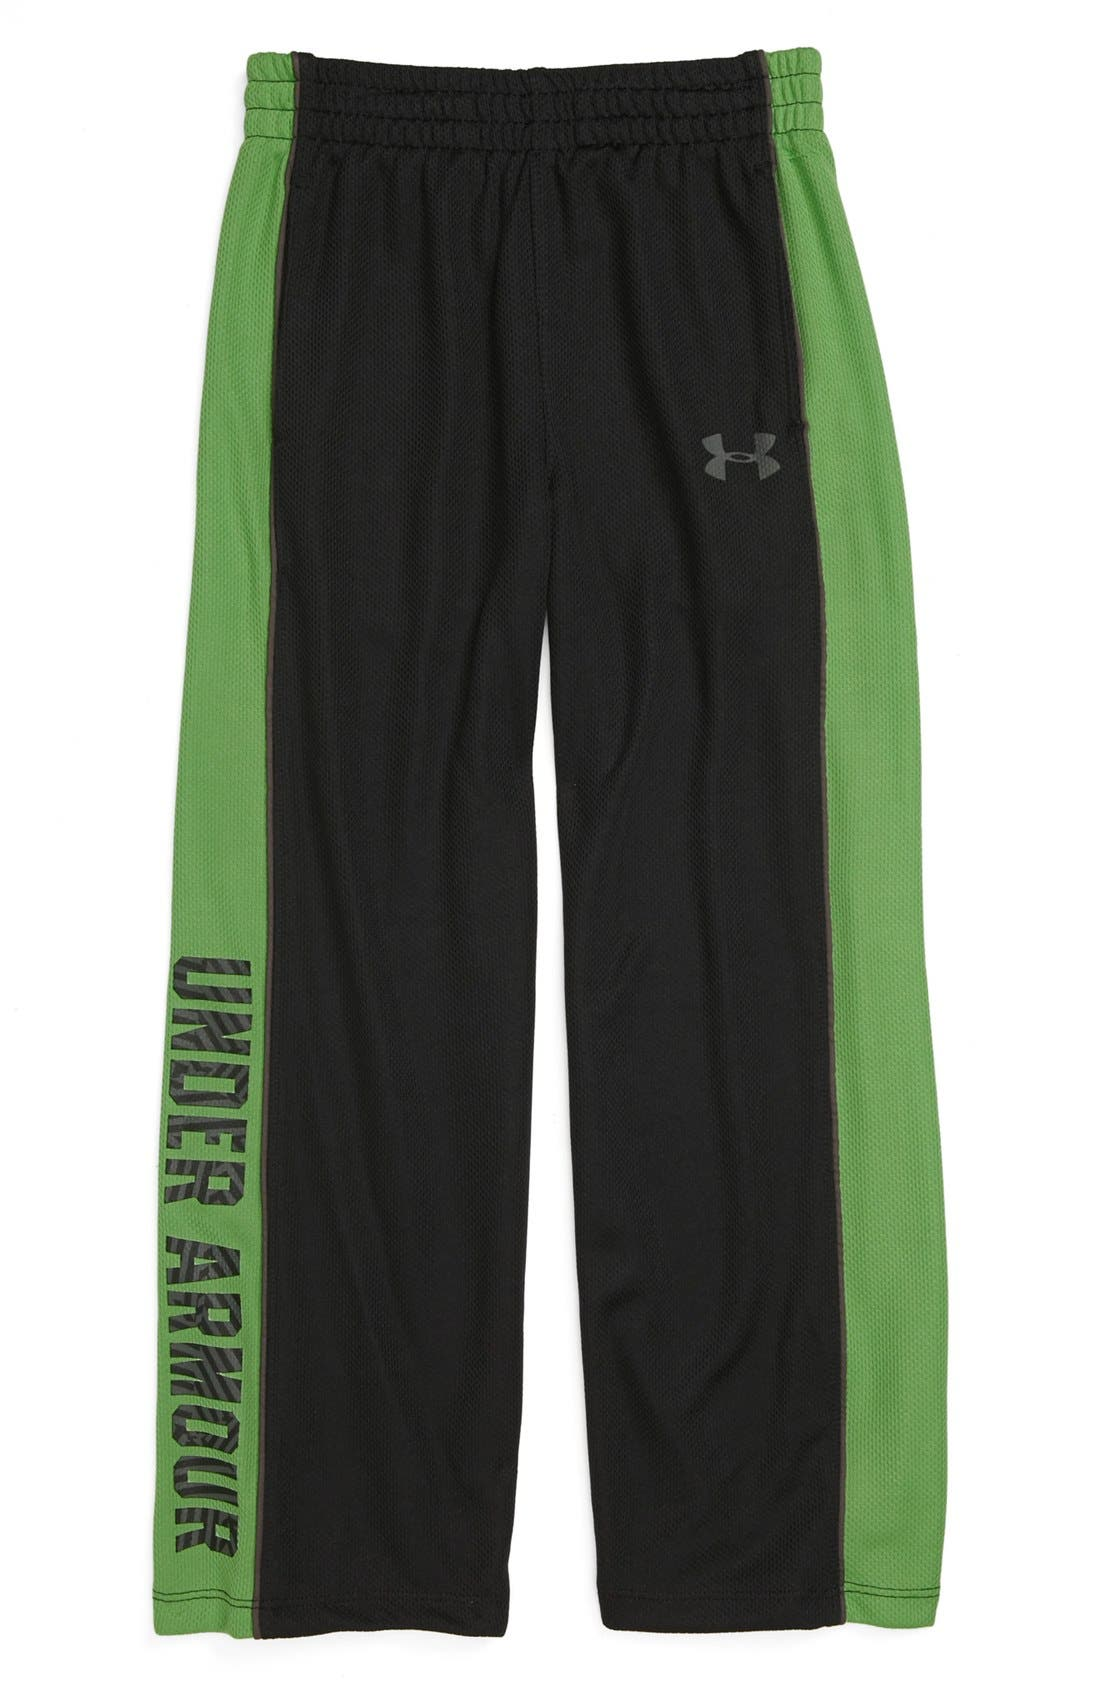 Main Image - Under Armour 'Favella' Mesh Pants (Little Boys)